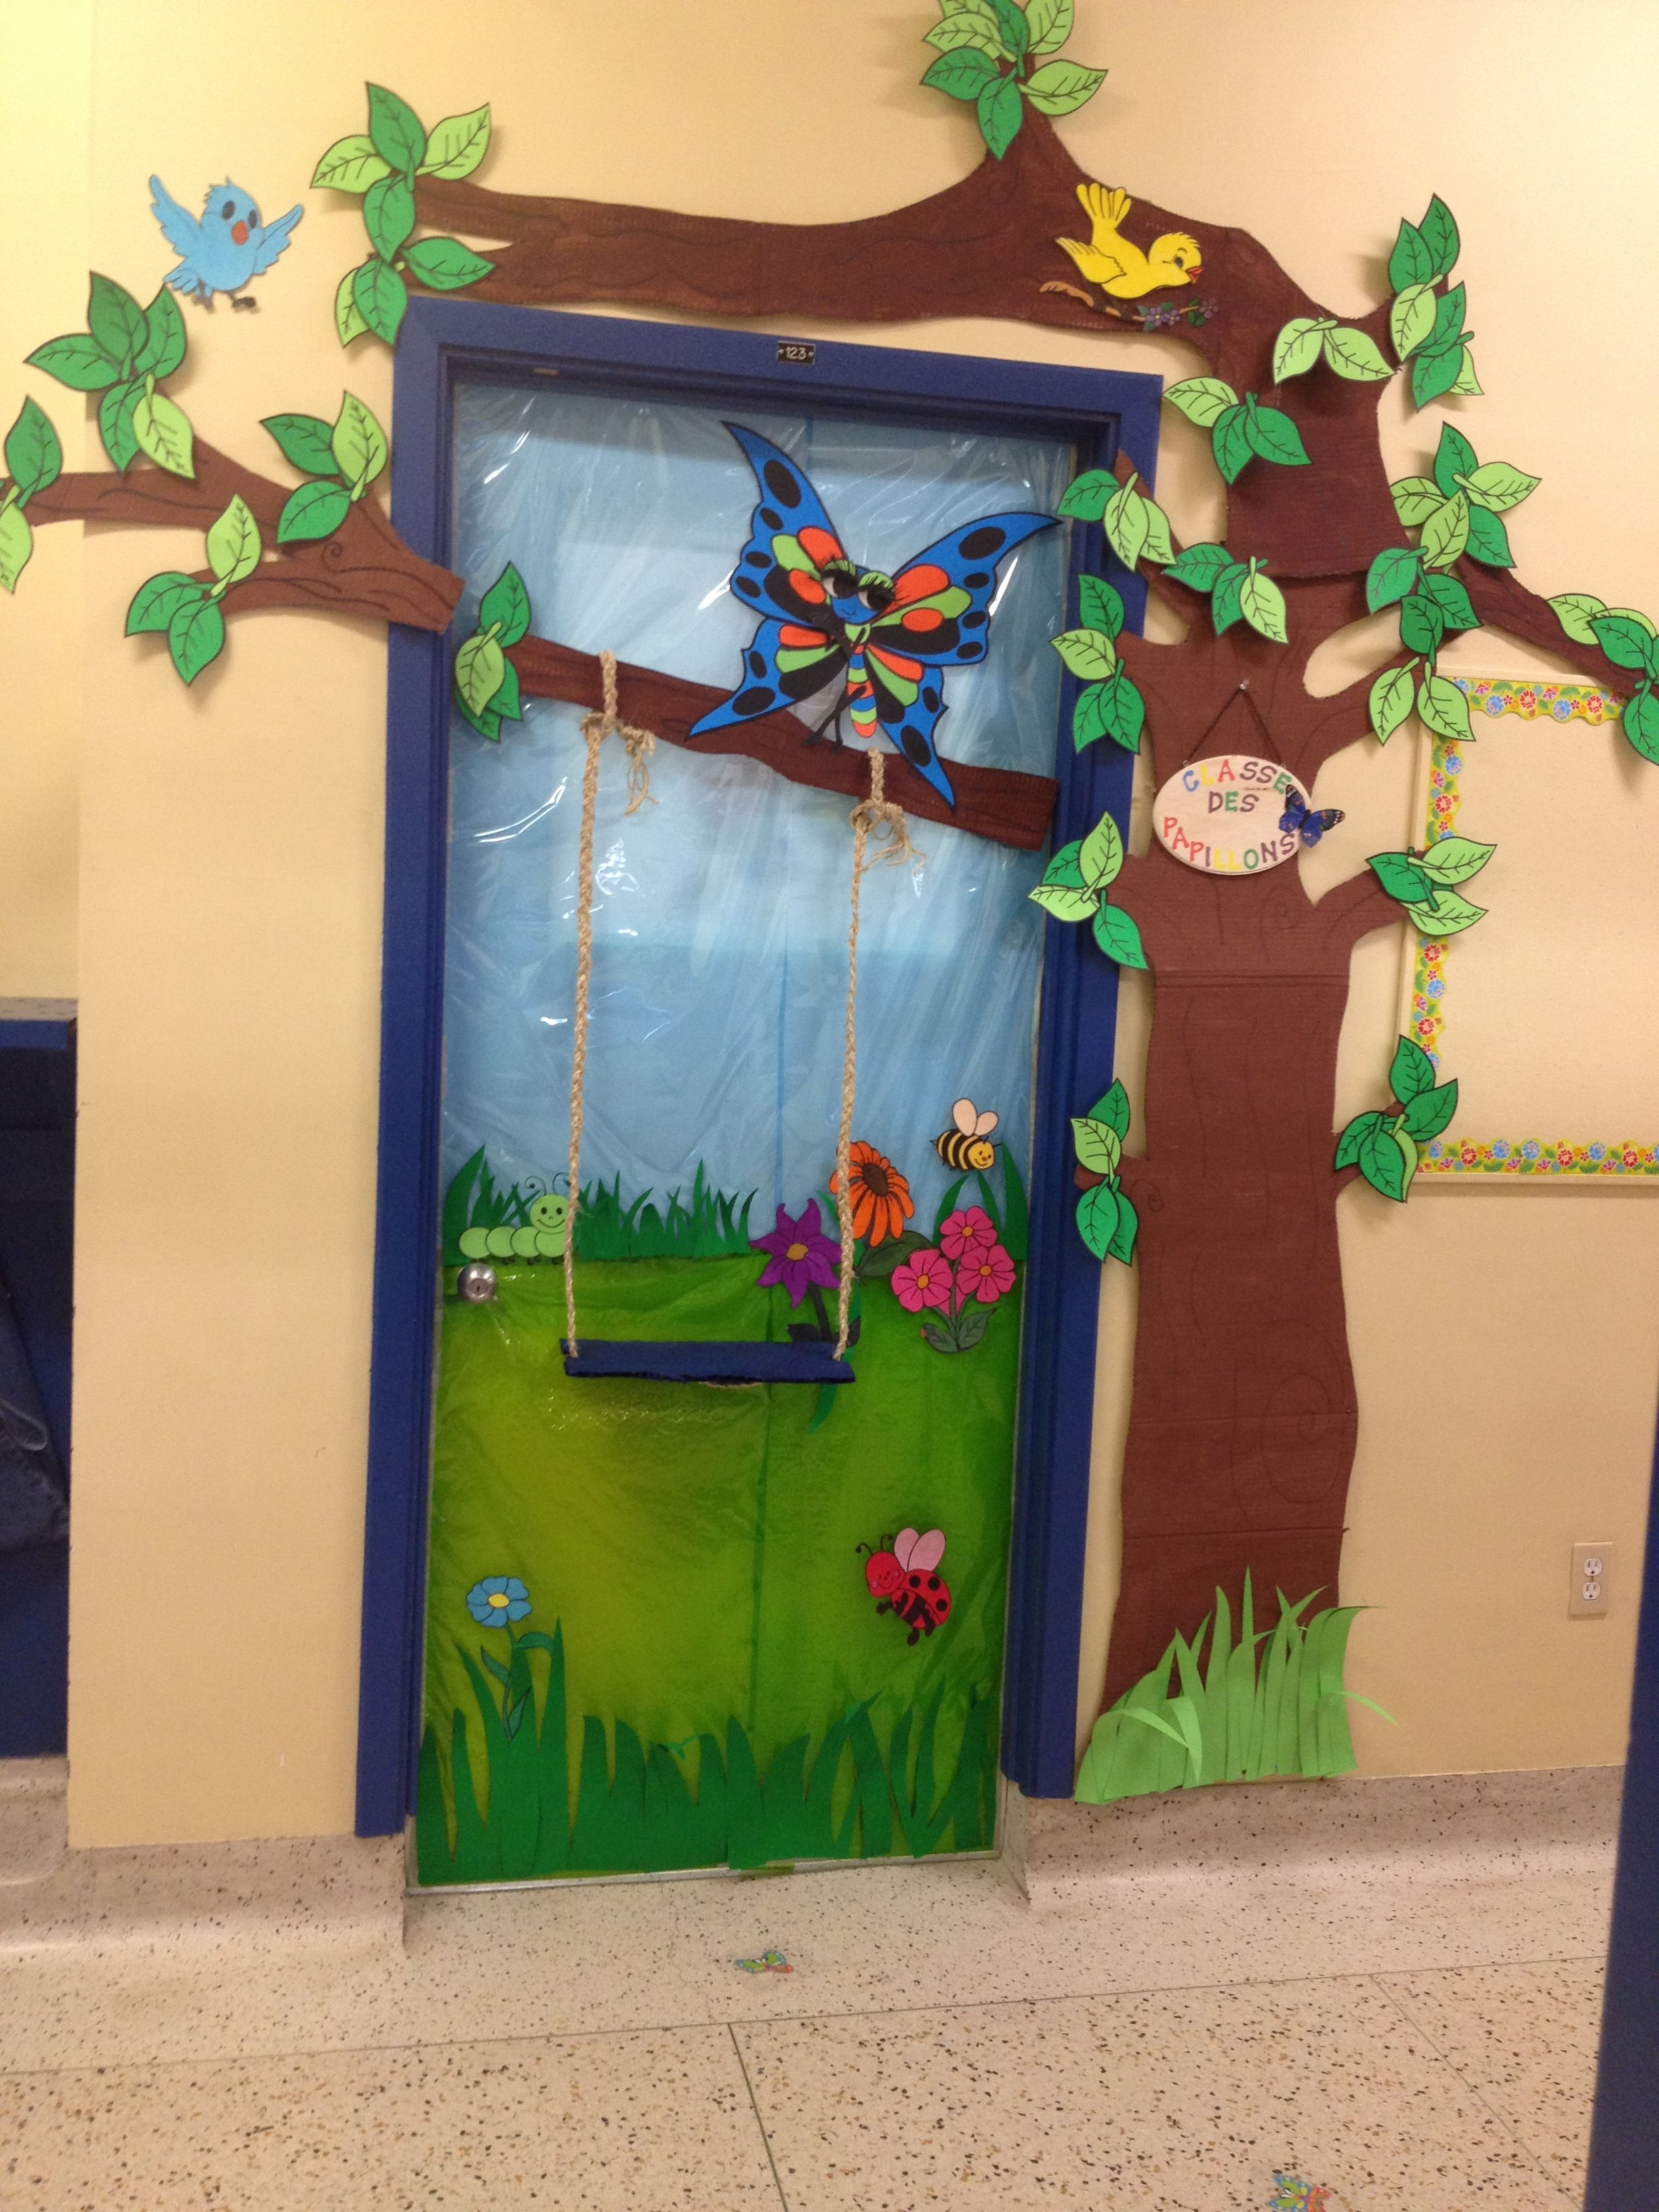 spring door Decoración aula Pinterest Spring door, Doors and - Halloween Office Door Decorating Contest Ideas